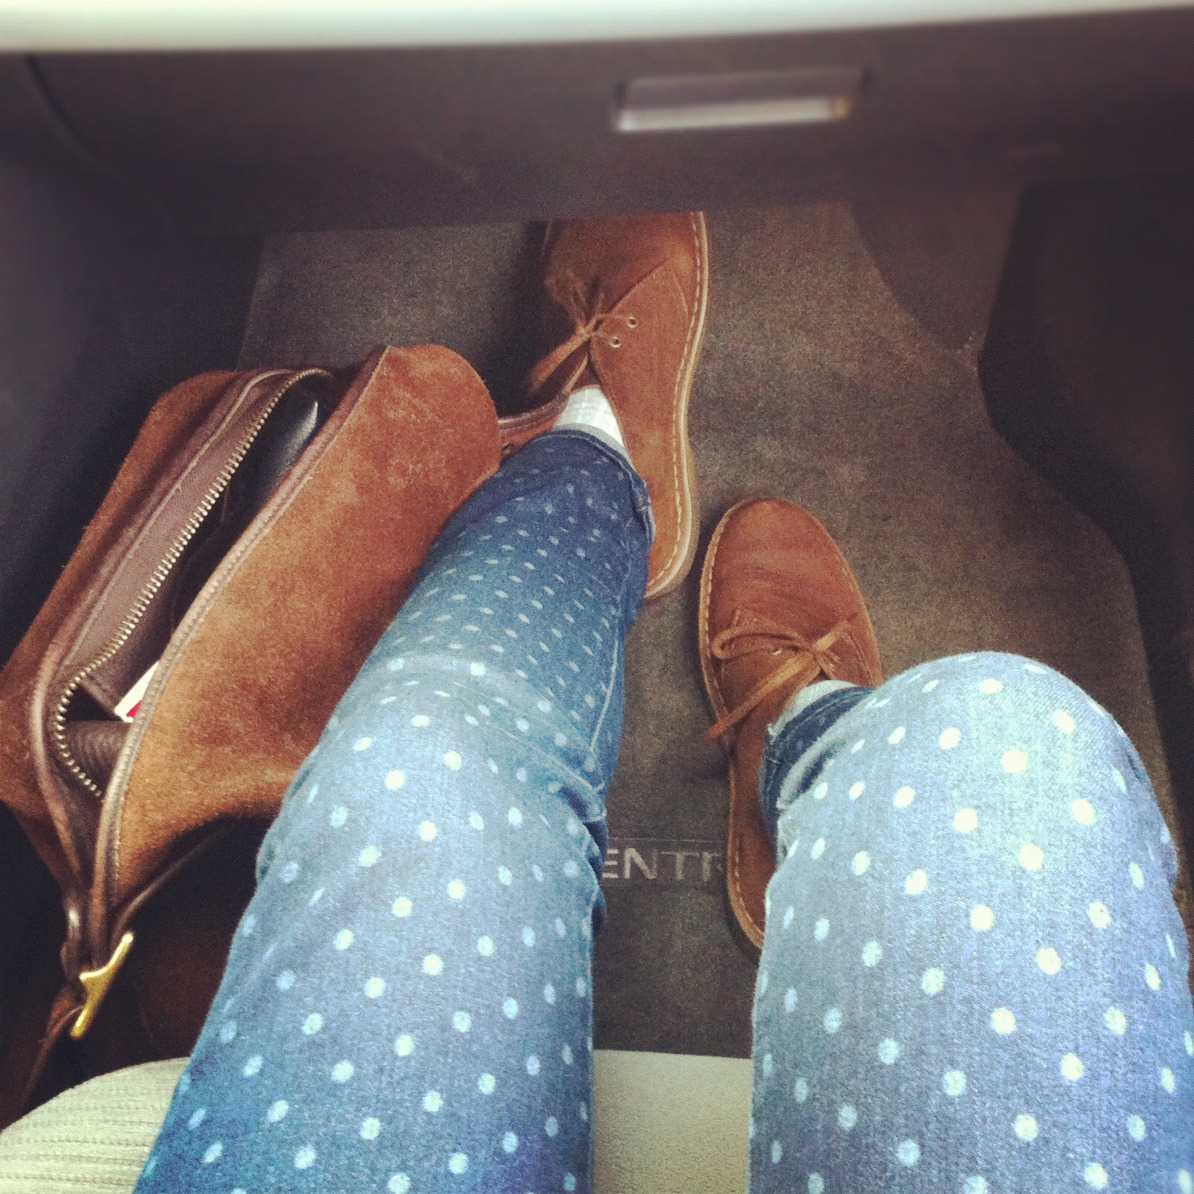 Of dots and desert boots.